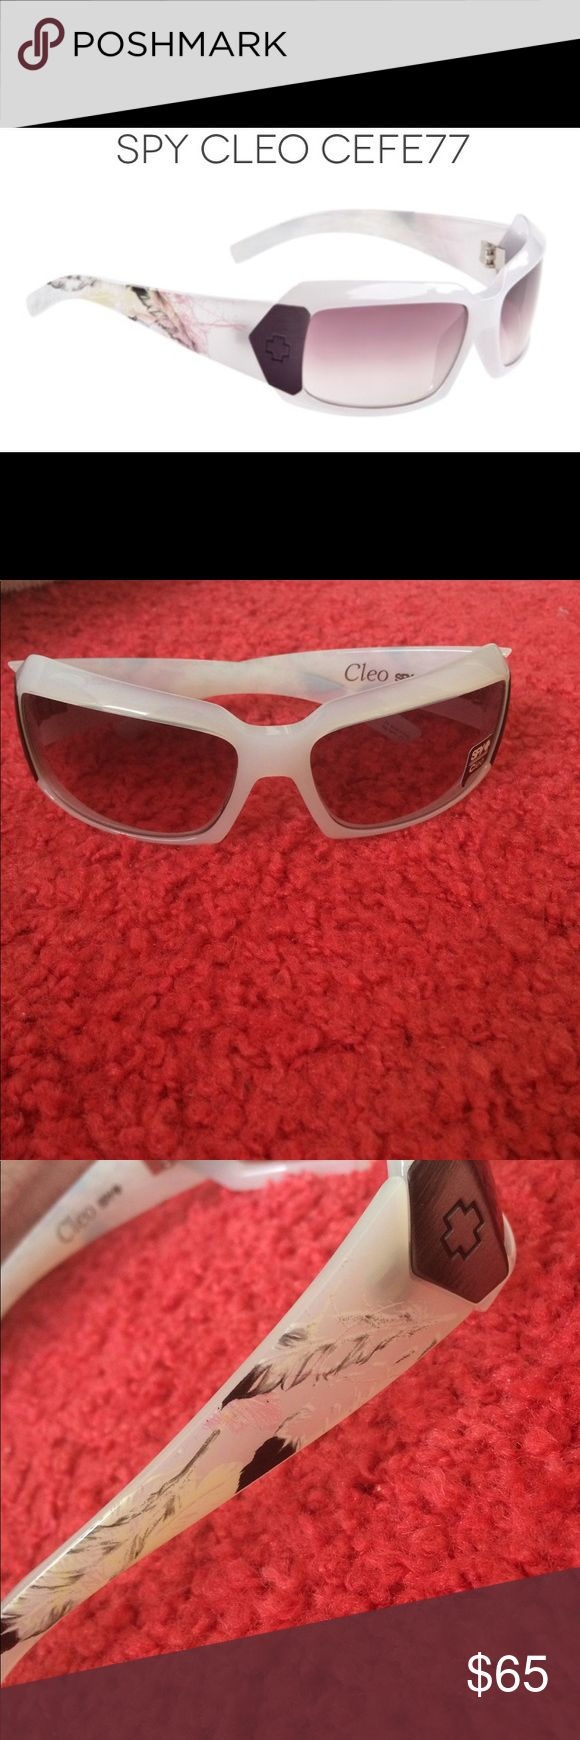 Spy sunglasses Cleo White feather Cleo sunglasses by Spy. ** Discontinued** Never worn. All original packaging, inserts and carrying bag. SPY Accessories Sunglasses